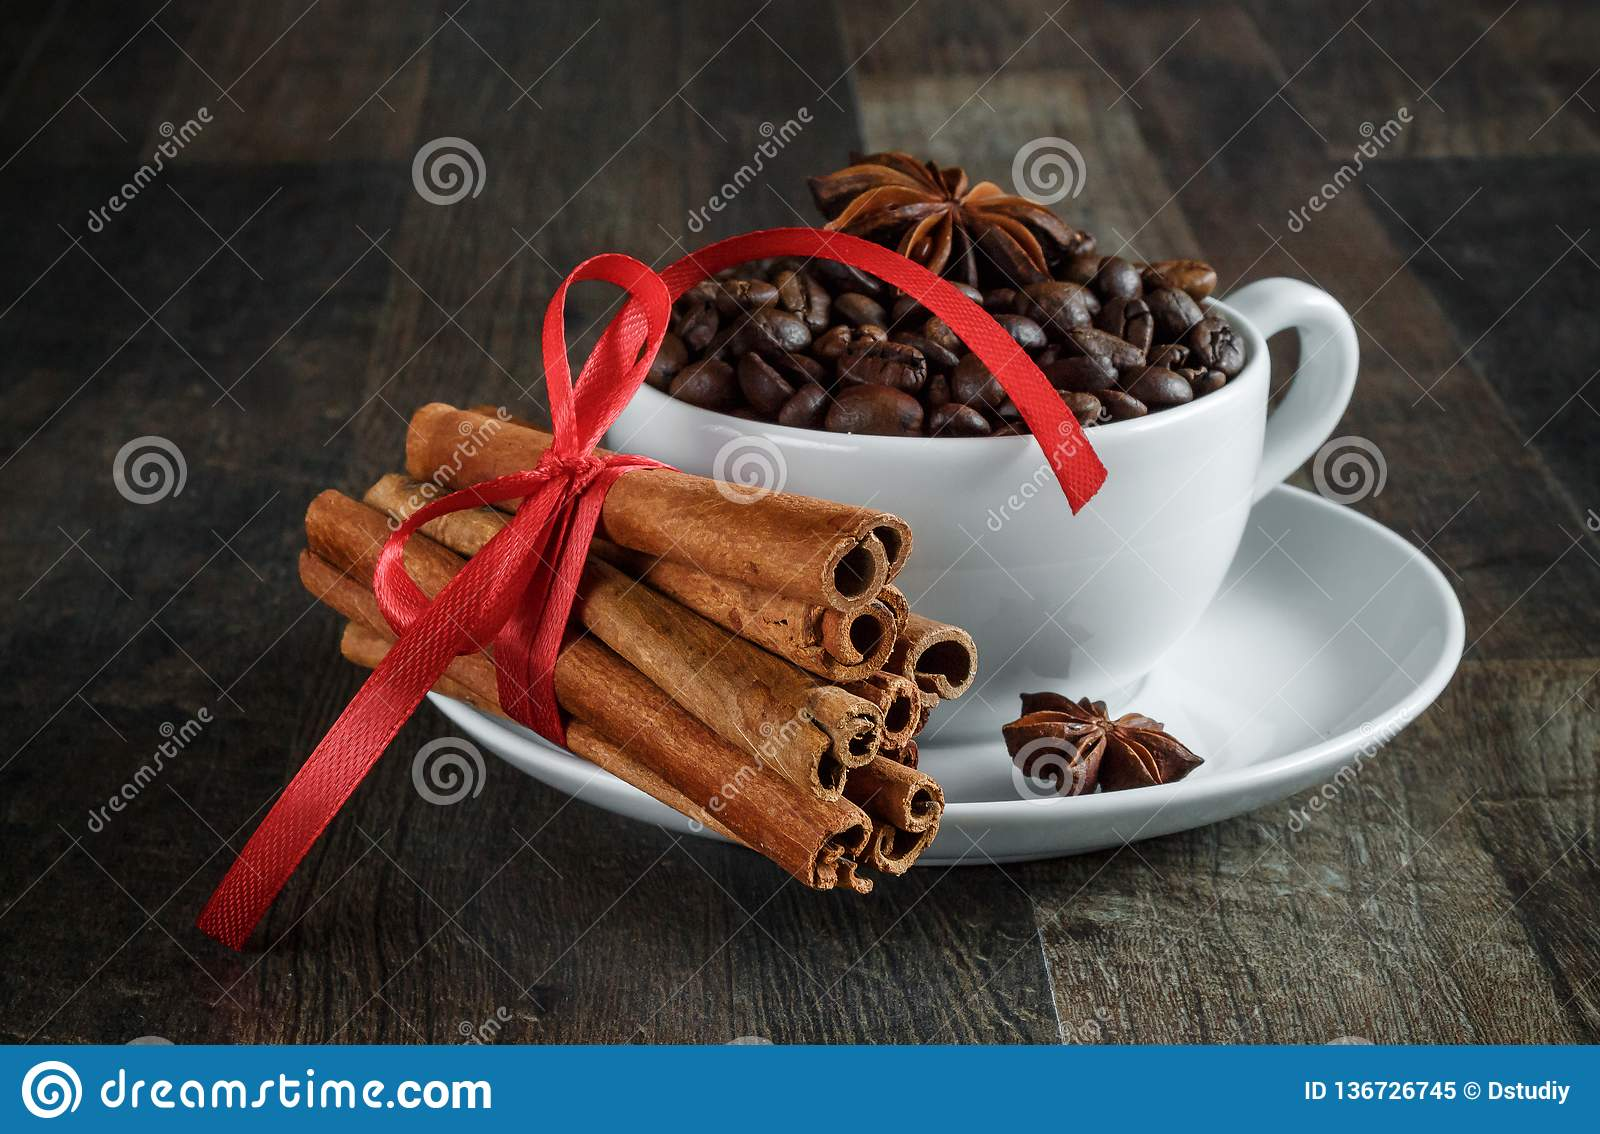 Coffee cup, coffee beans, spices, anise, cinnamon